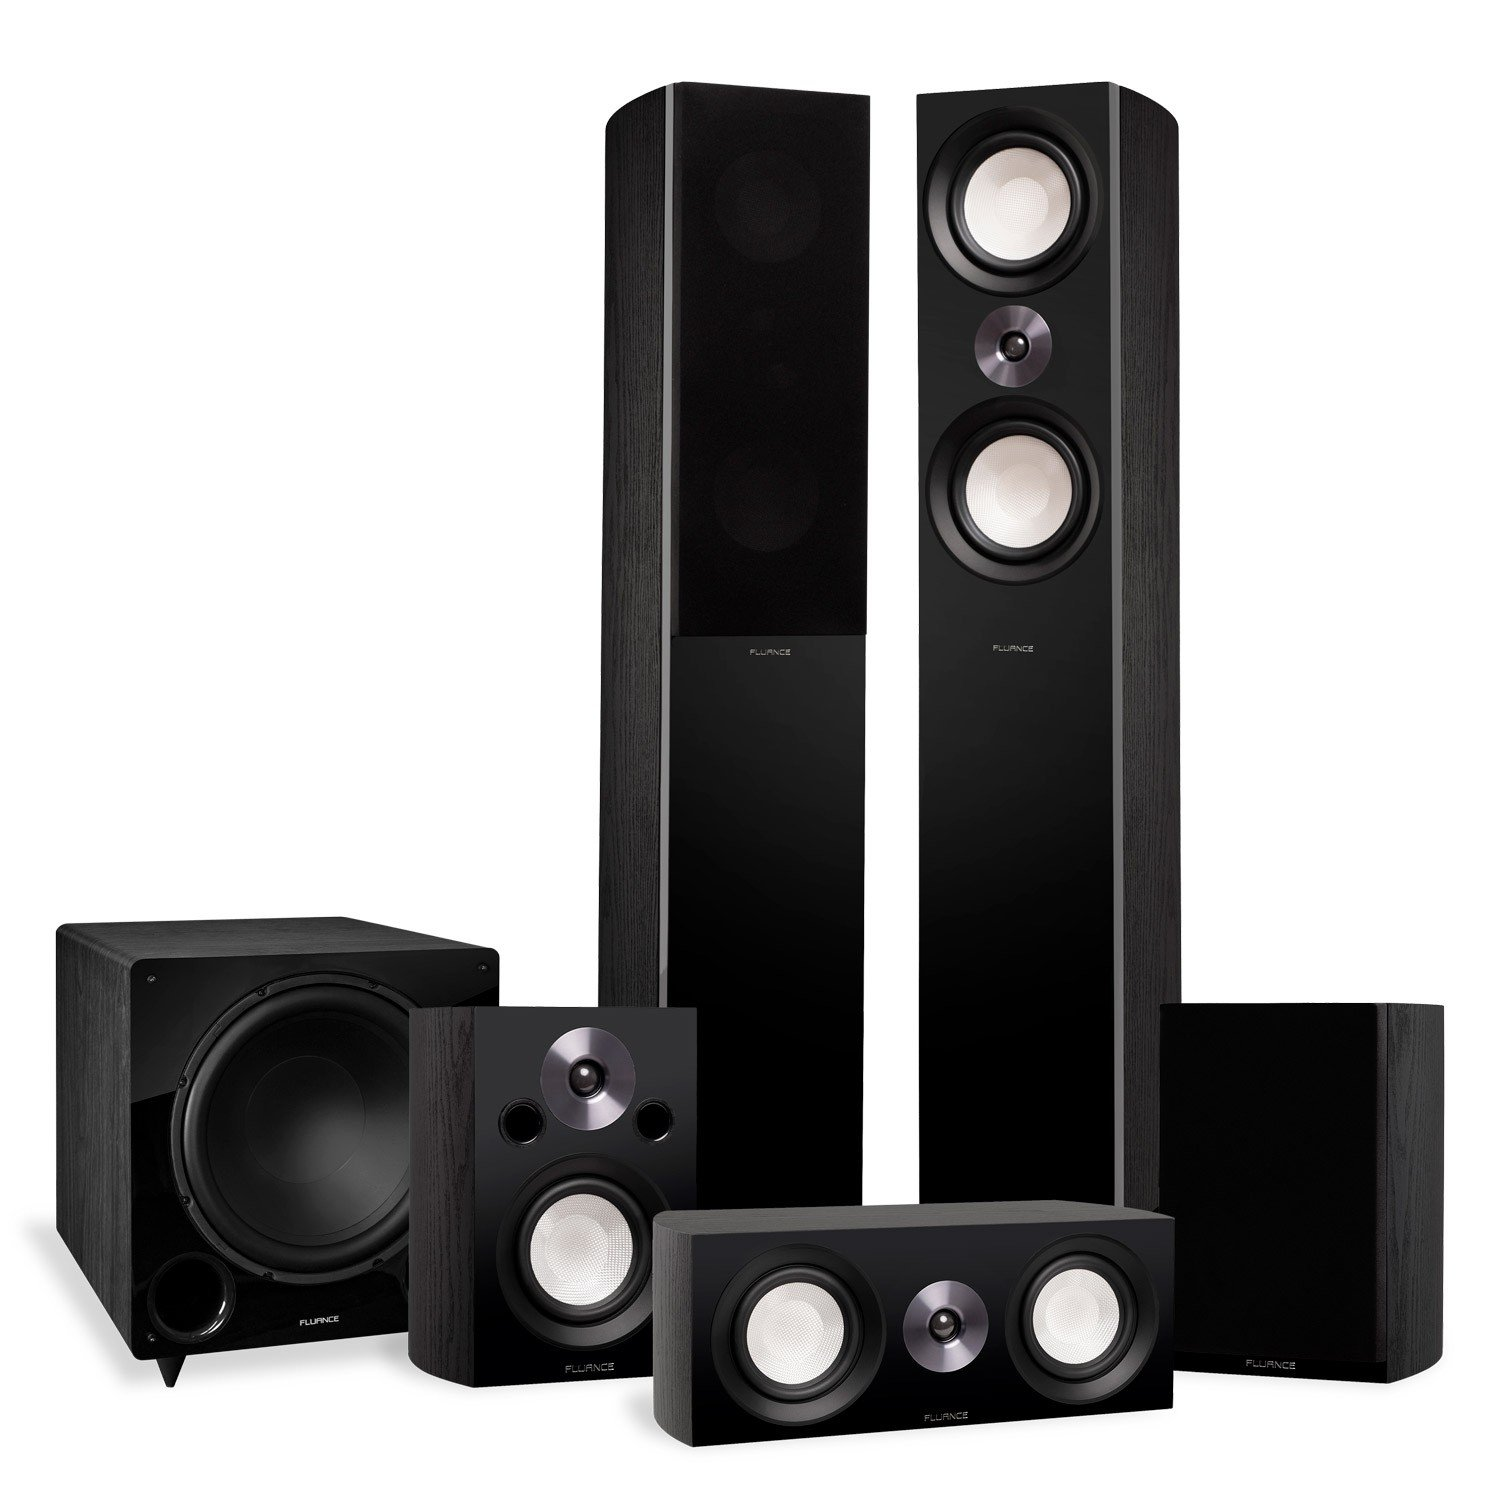 Reference Surround Sound Home Theater 5.1 Channel Speaker System with DB12 Subwoofer